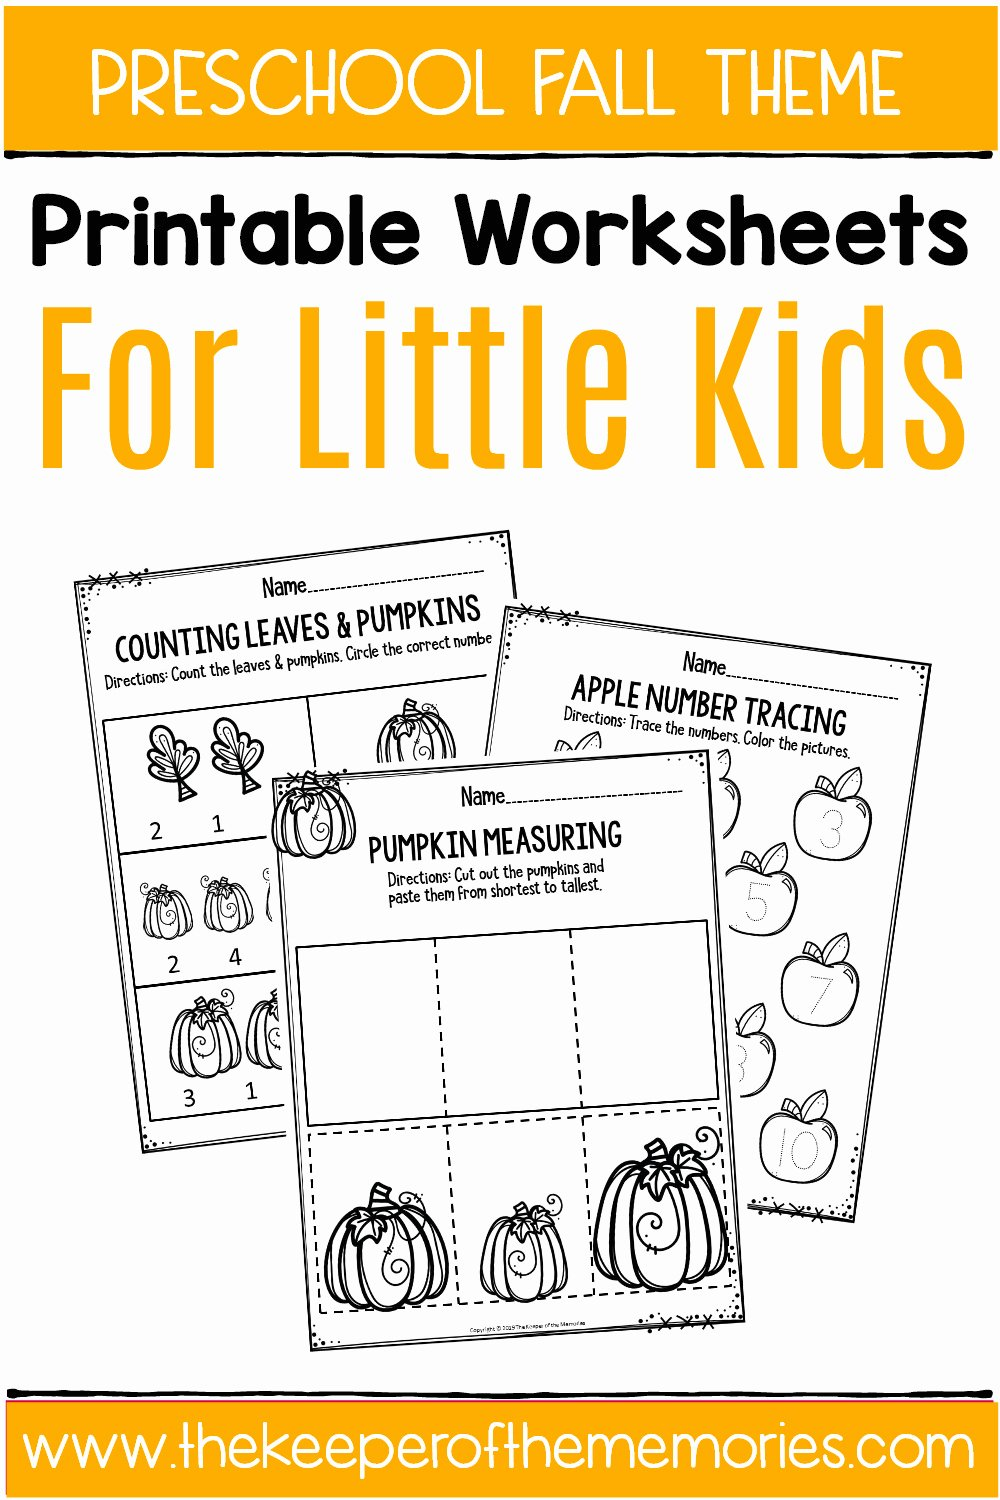 Fall Printable Worksheets for Preschoolers Kids Fall Printable Preschool Worksheets the Keeper Of the Memories